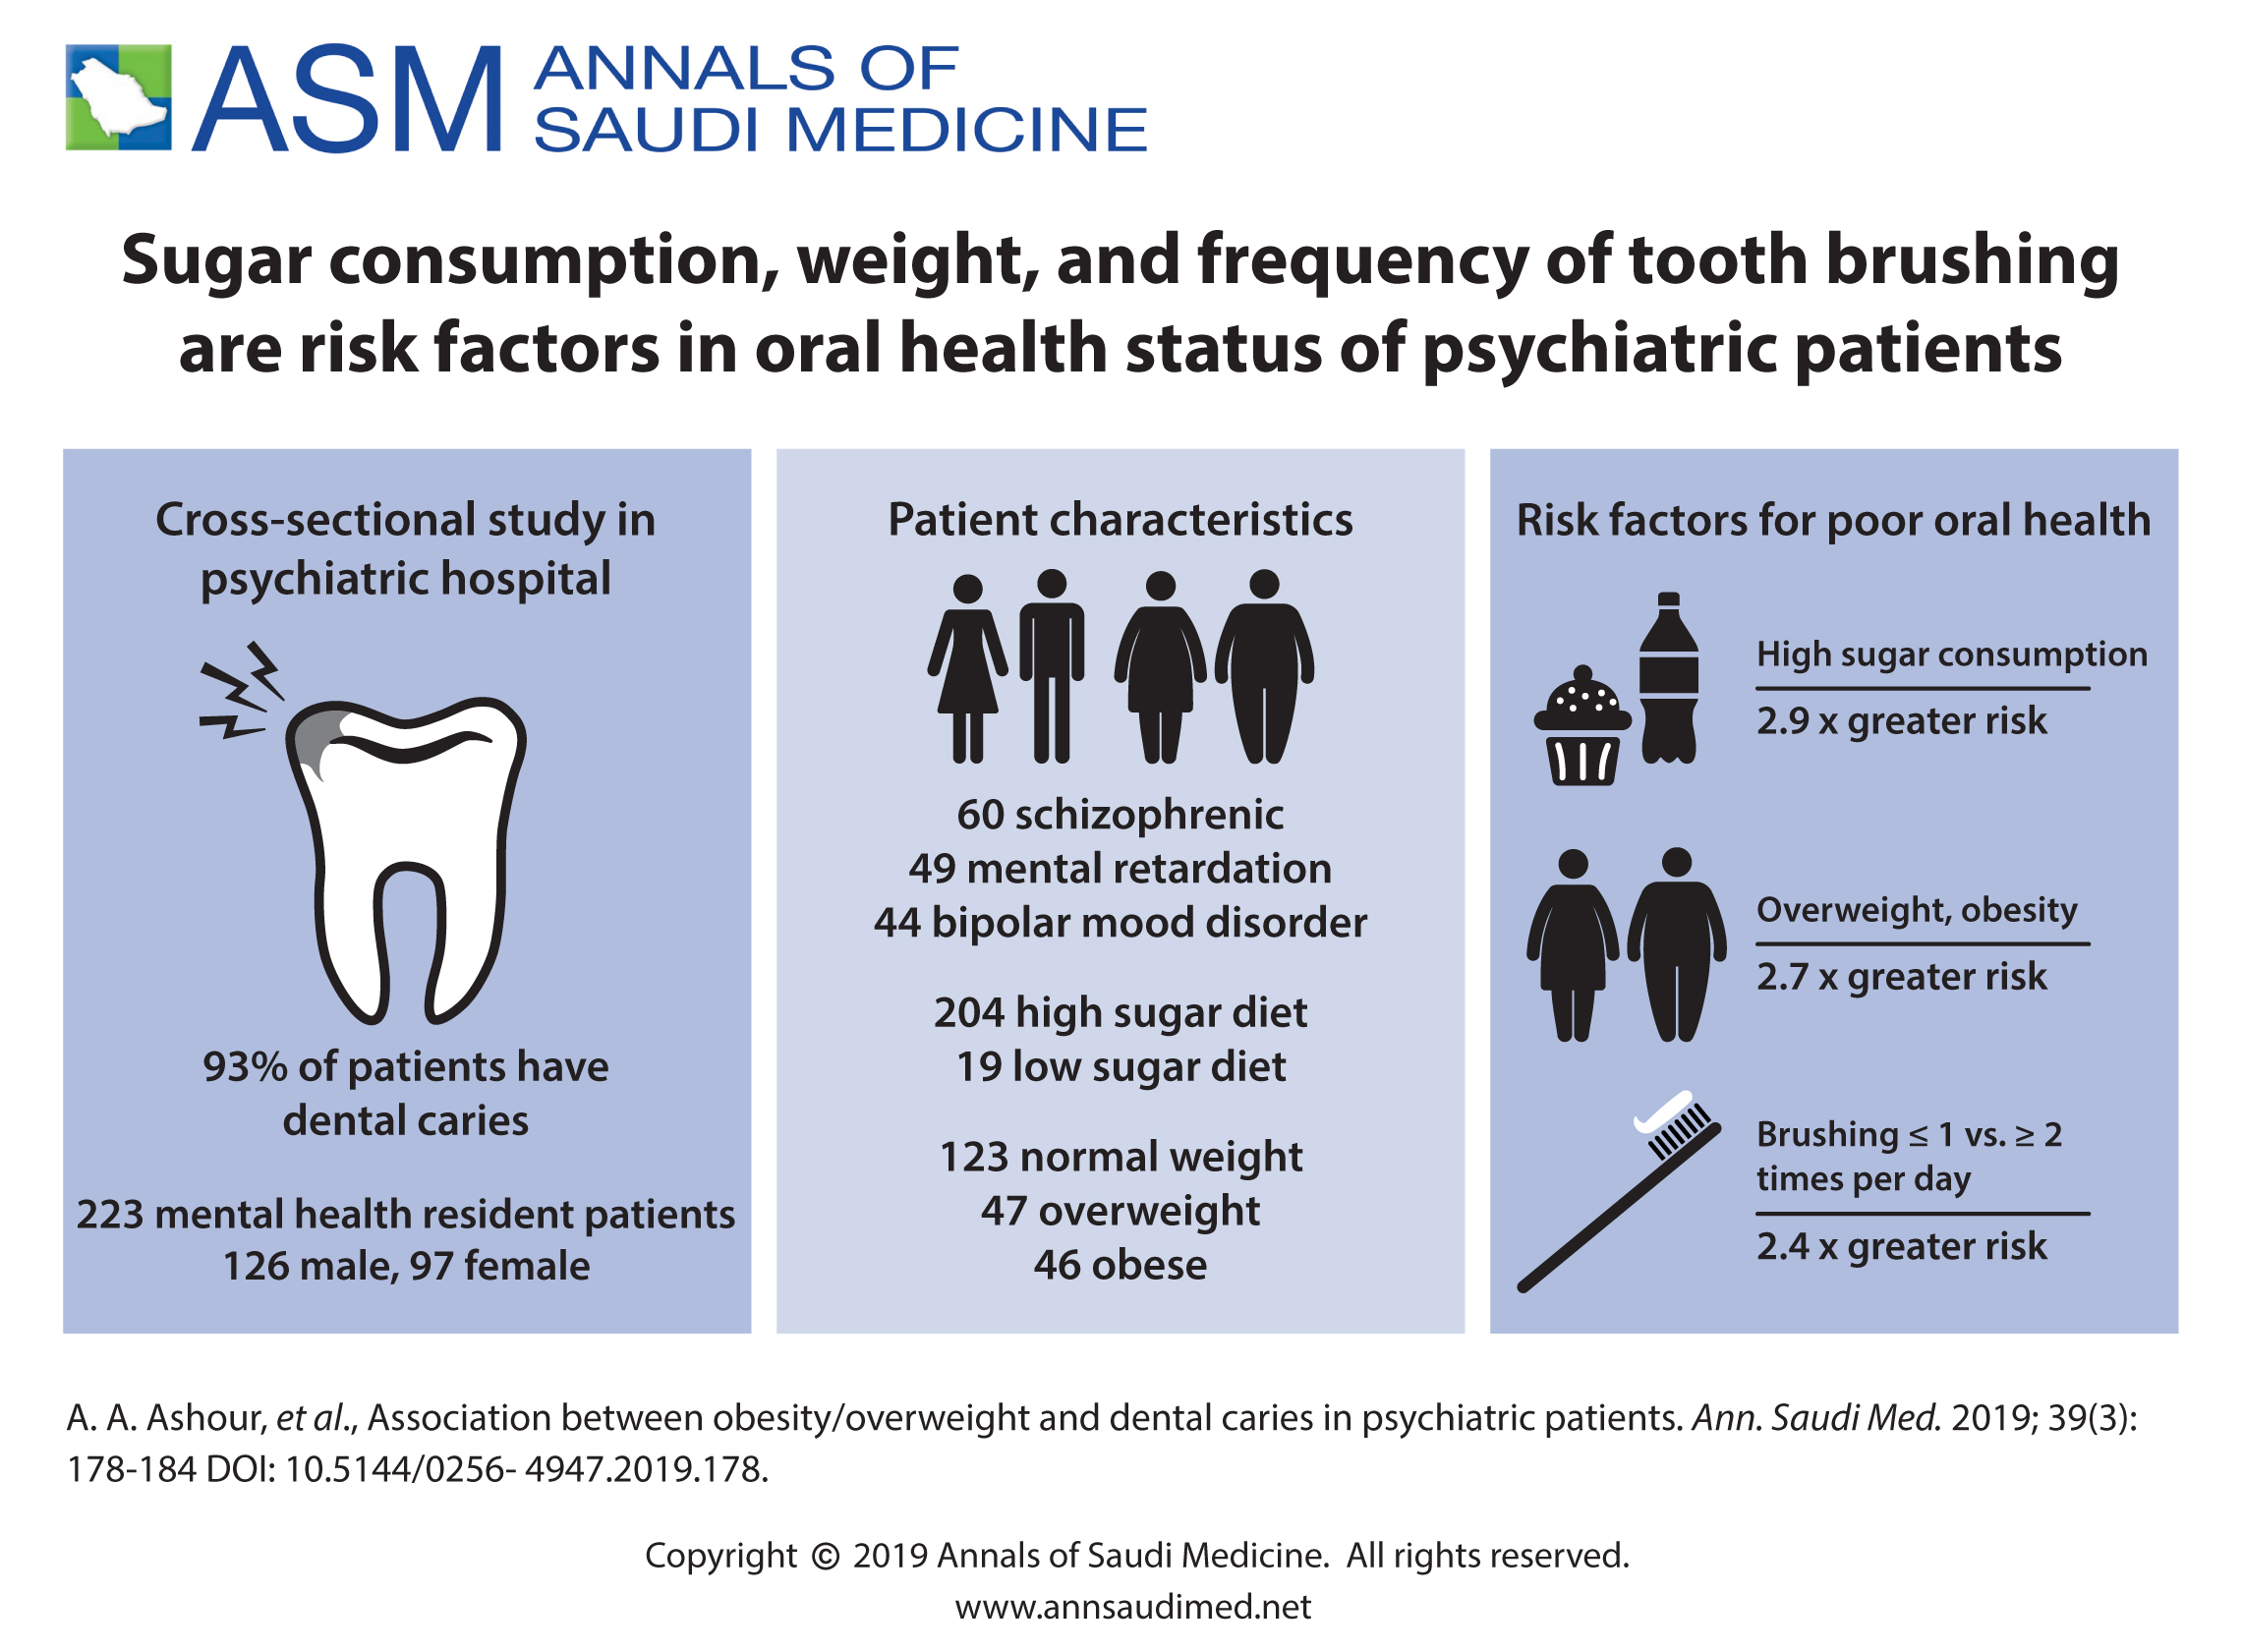 Association between obesity/overweight and dental caries in